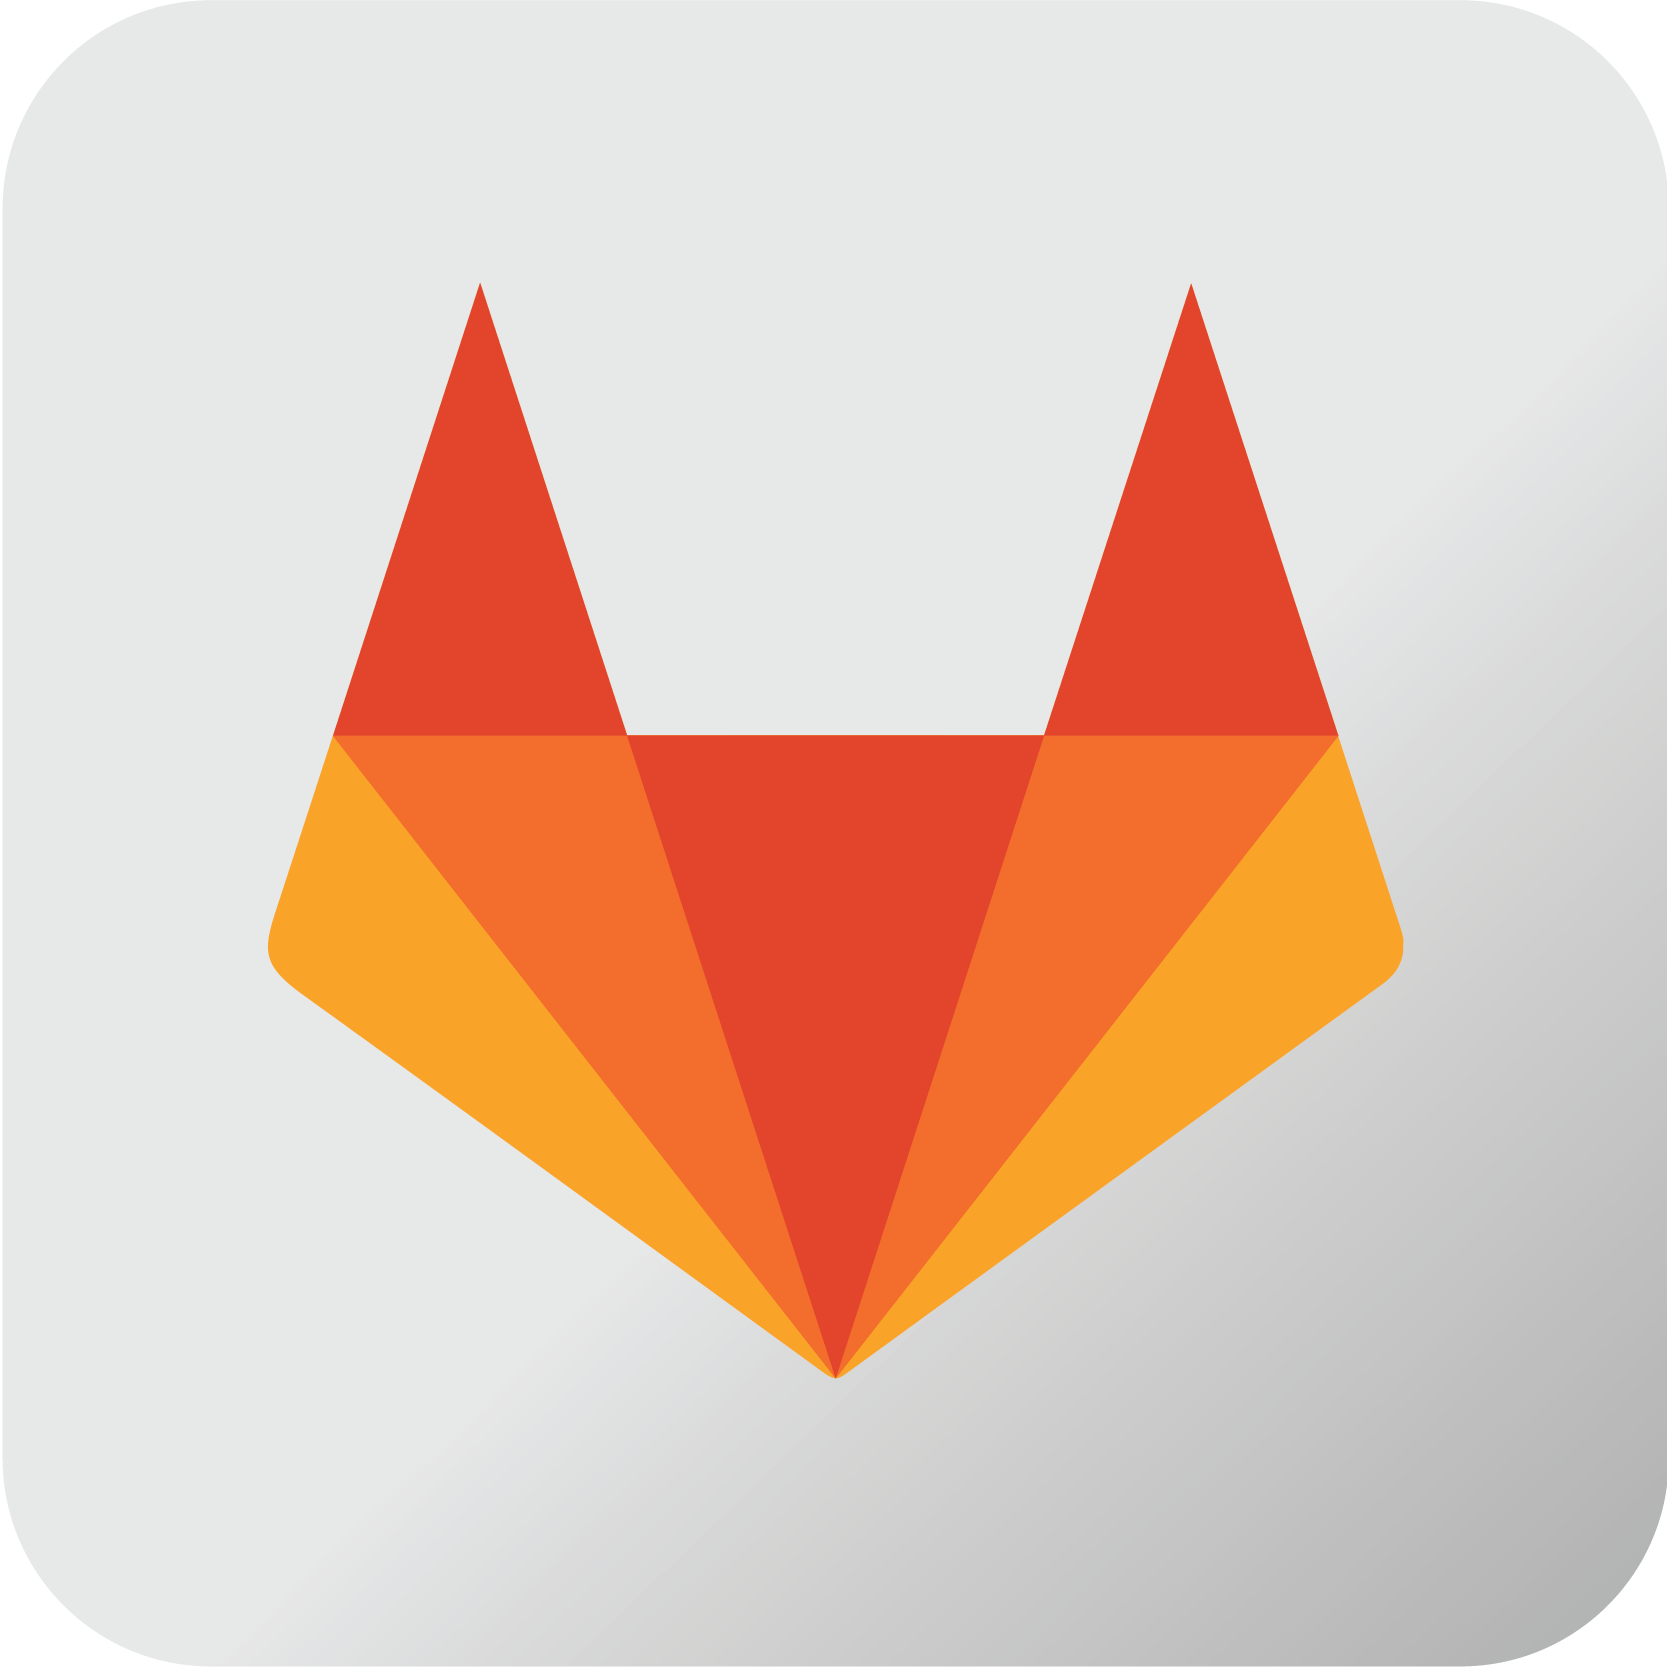 Source Code Management (GitLab)